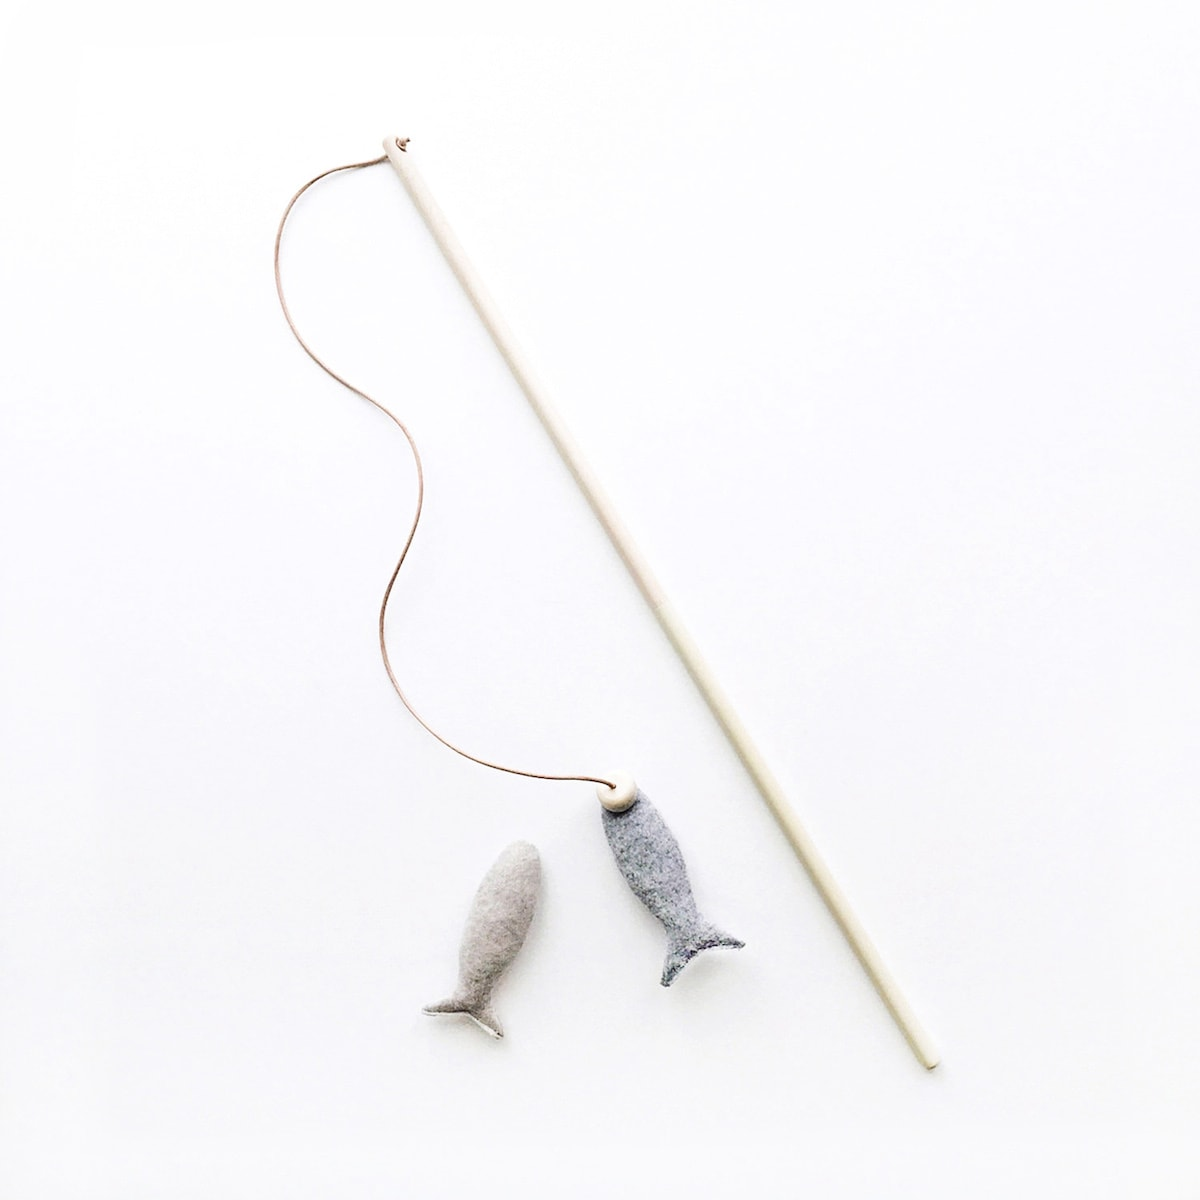 Fishing Rod Cat Toy // Siamese Social Club